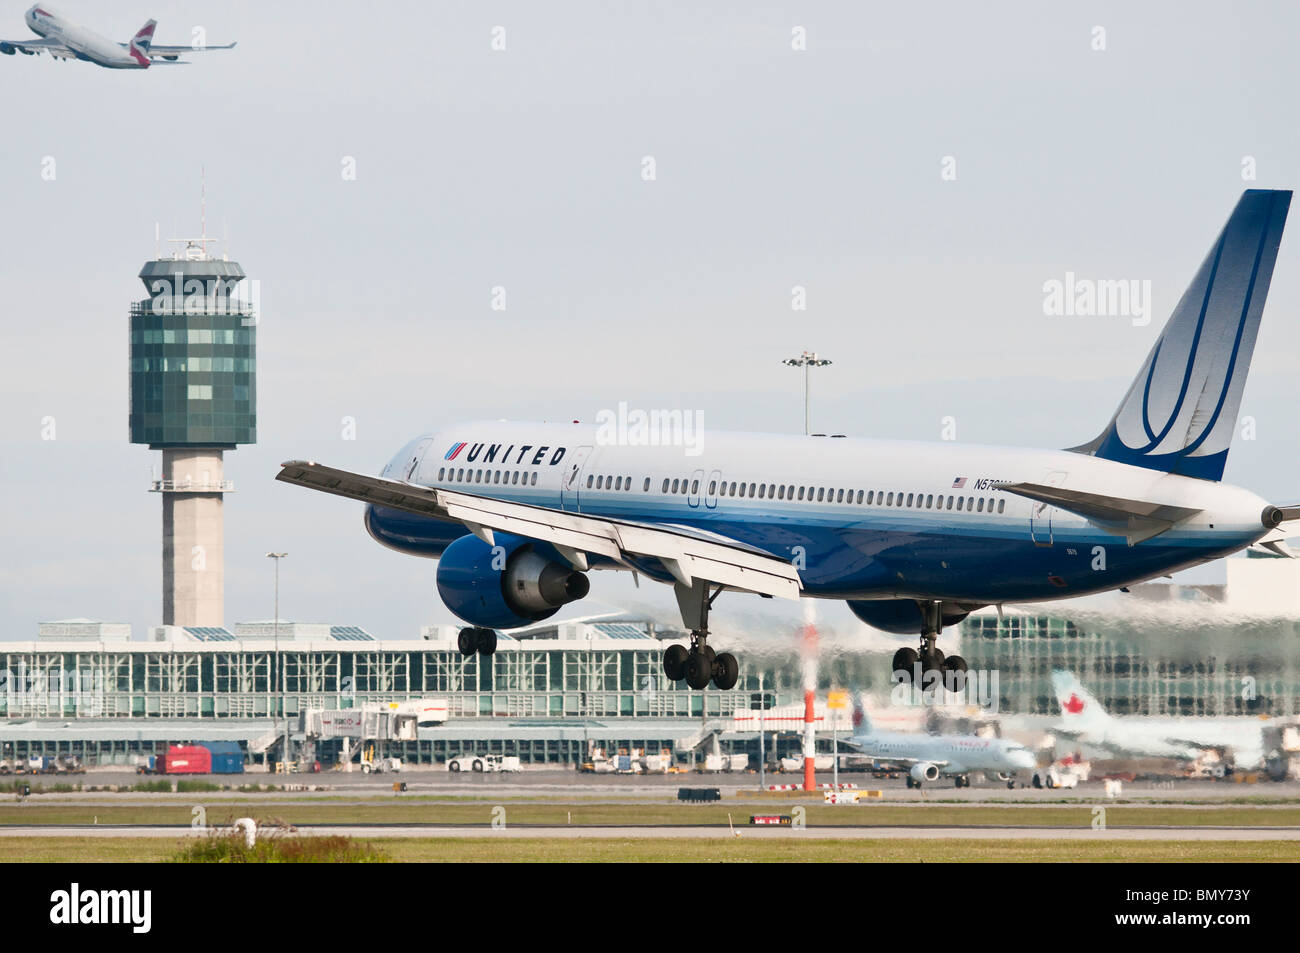 A United Airlines Boeing 757 jet airliner lands at Vancouver International Airport (YVR). - Stock Image